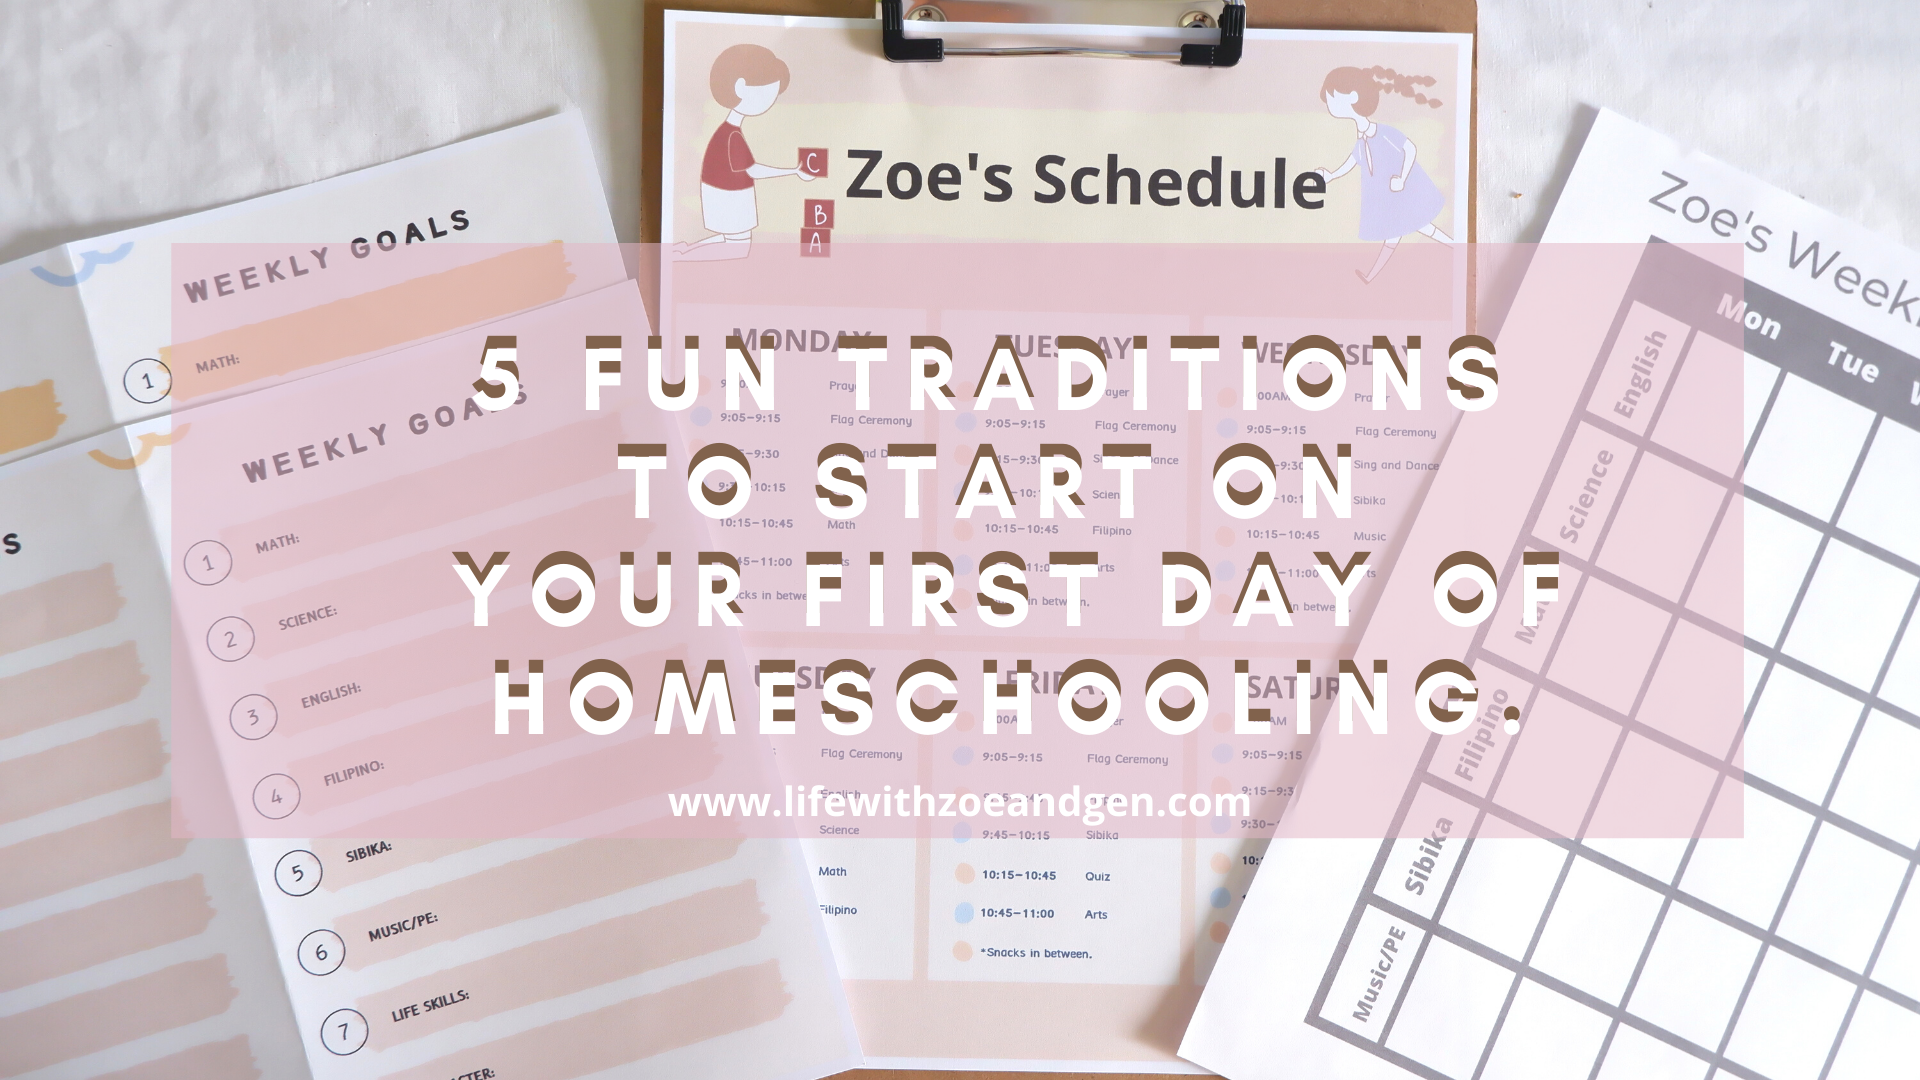 Getting ready for another school year? Here's 5 fun tradition to kick off your school year. Remember to make your first day fun and a memorable one.